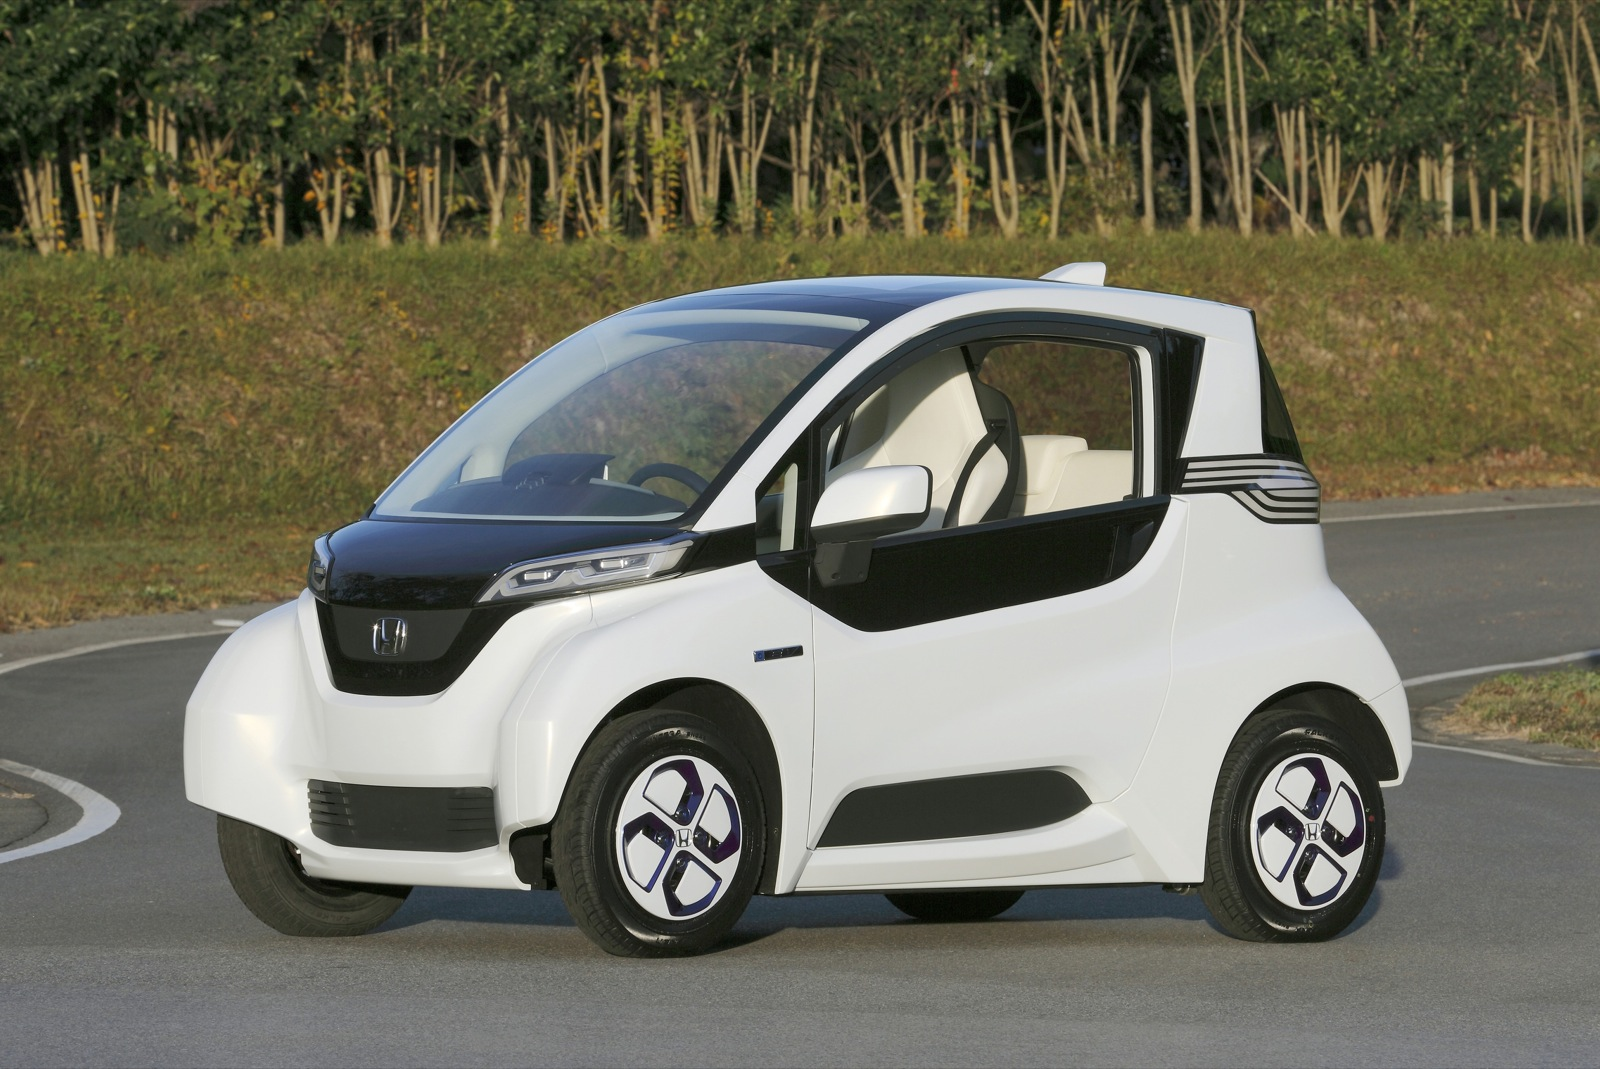 Honda Electric Micro Commuter Car To Begin Testing In Japan